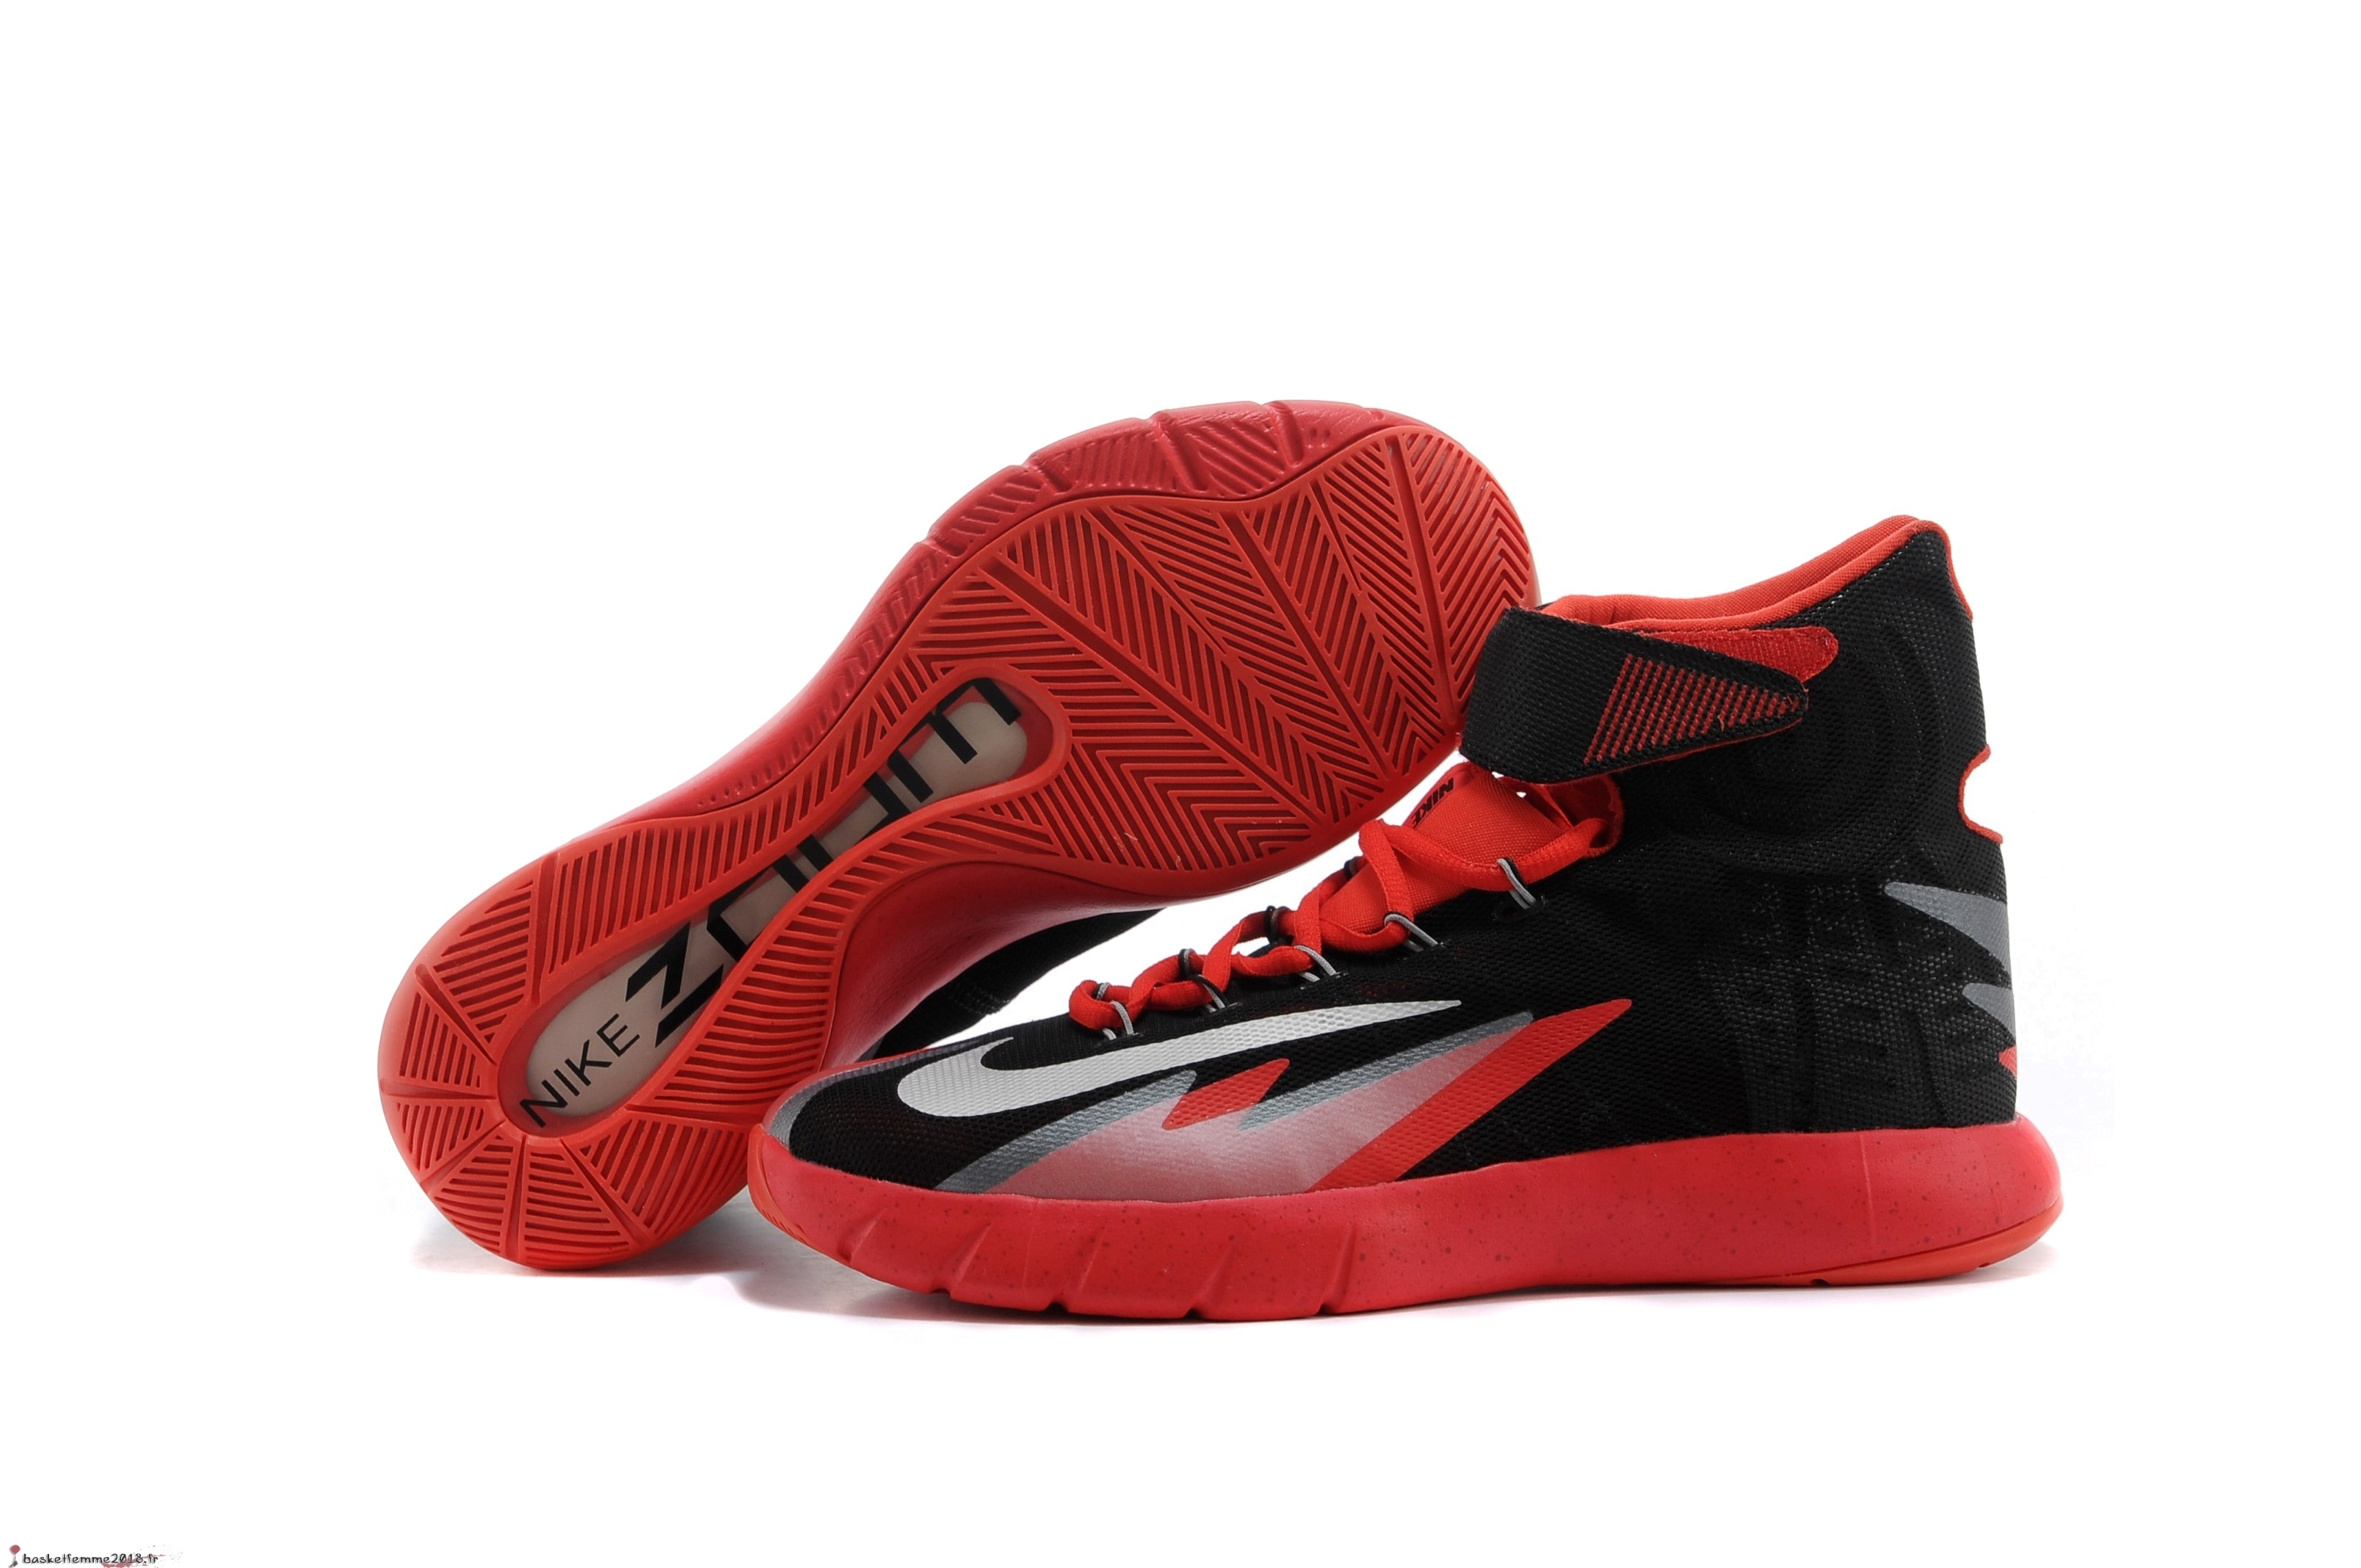 Nike Zoom Hyperrev Kyrie Irving Homme Noir Rouge Chaussure de Basket